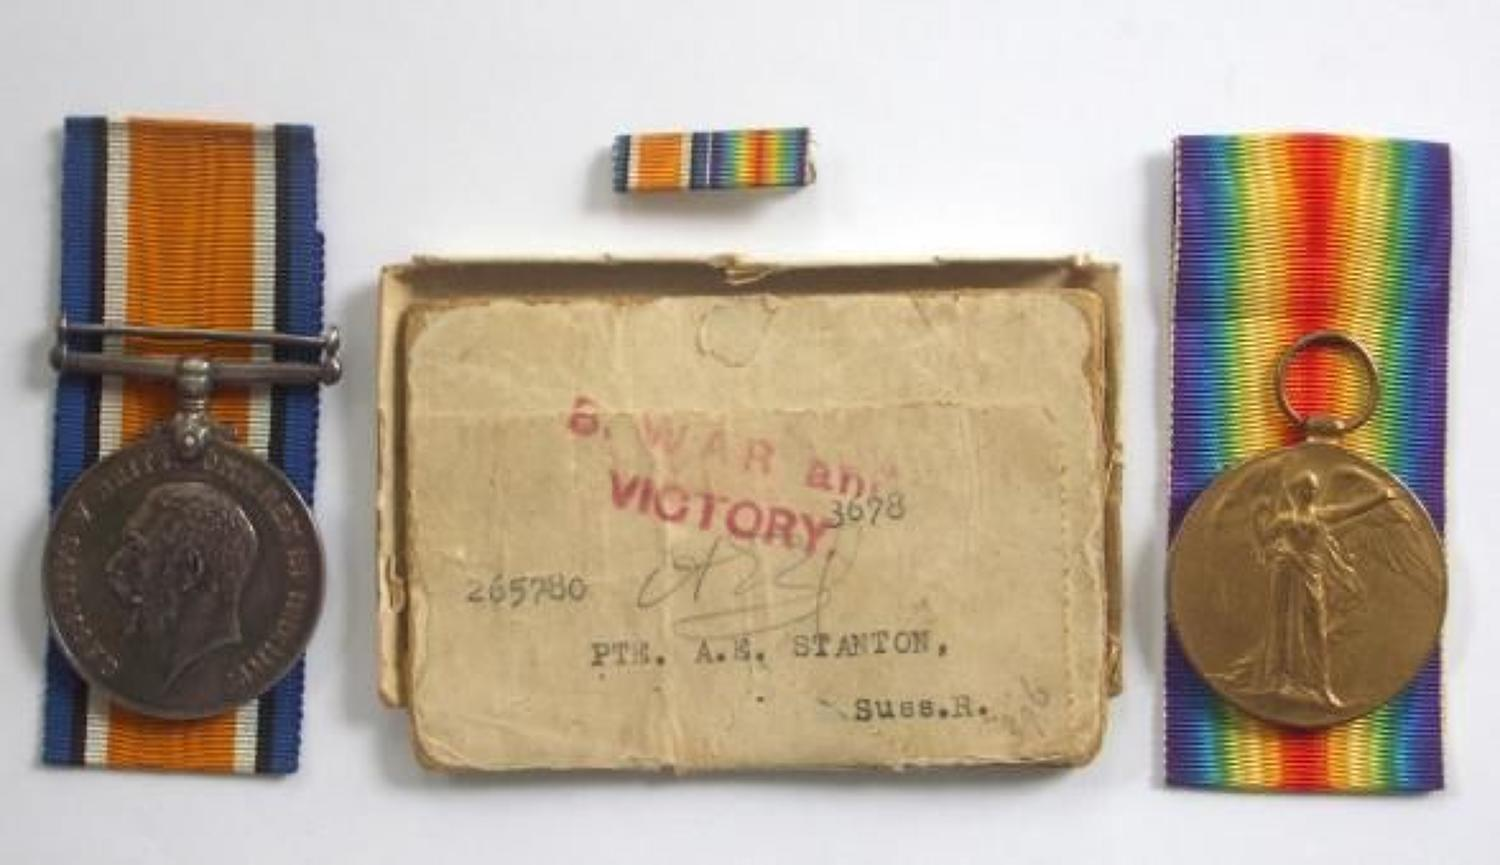 WW1 Royal Sussex Regiment Pair of Medals.